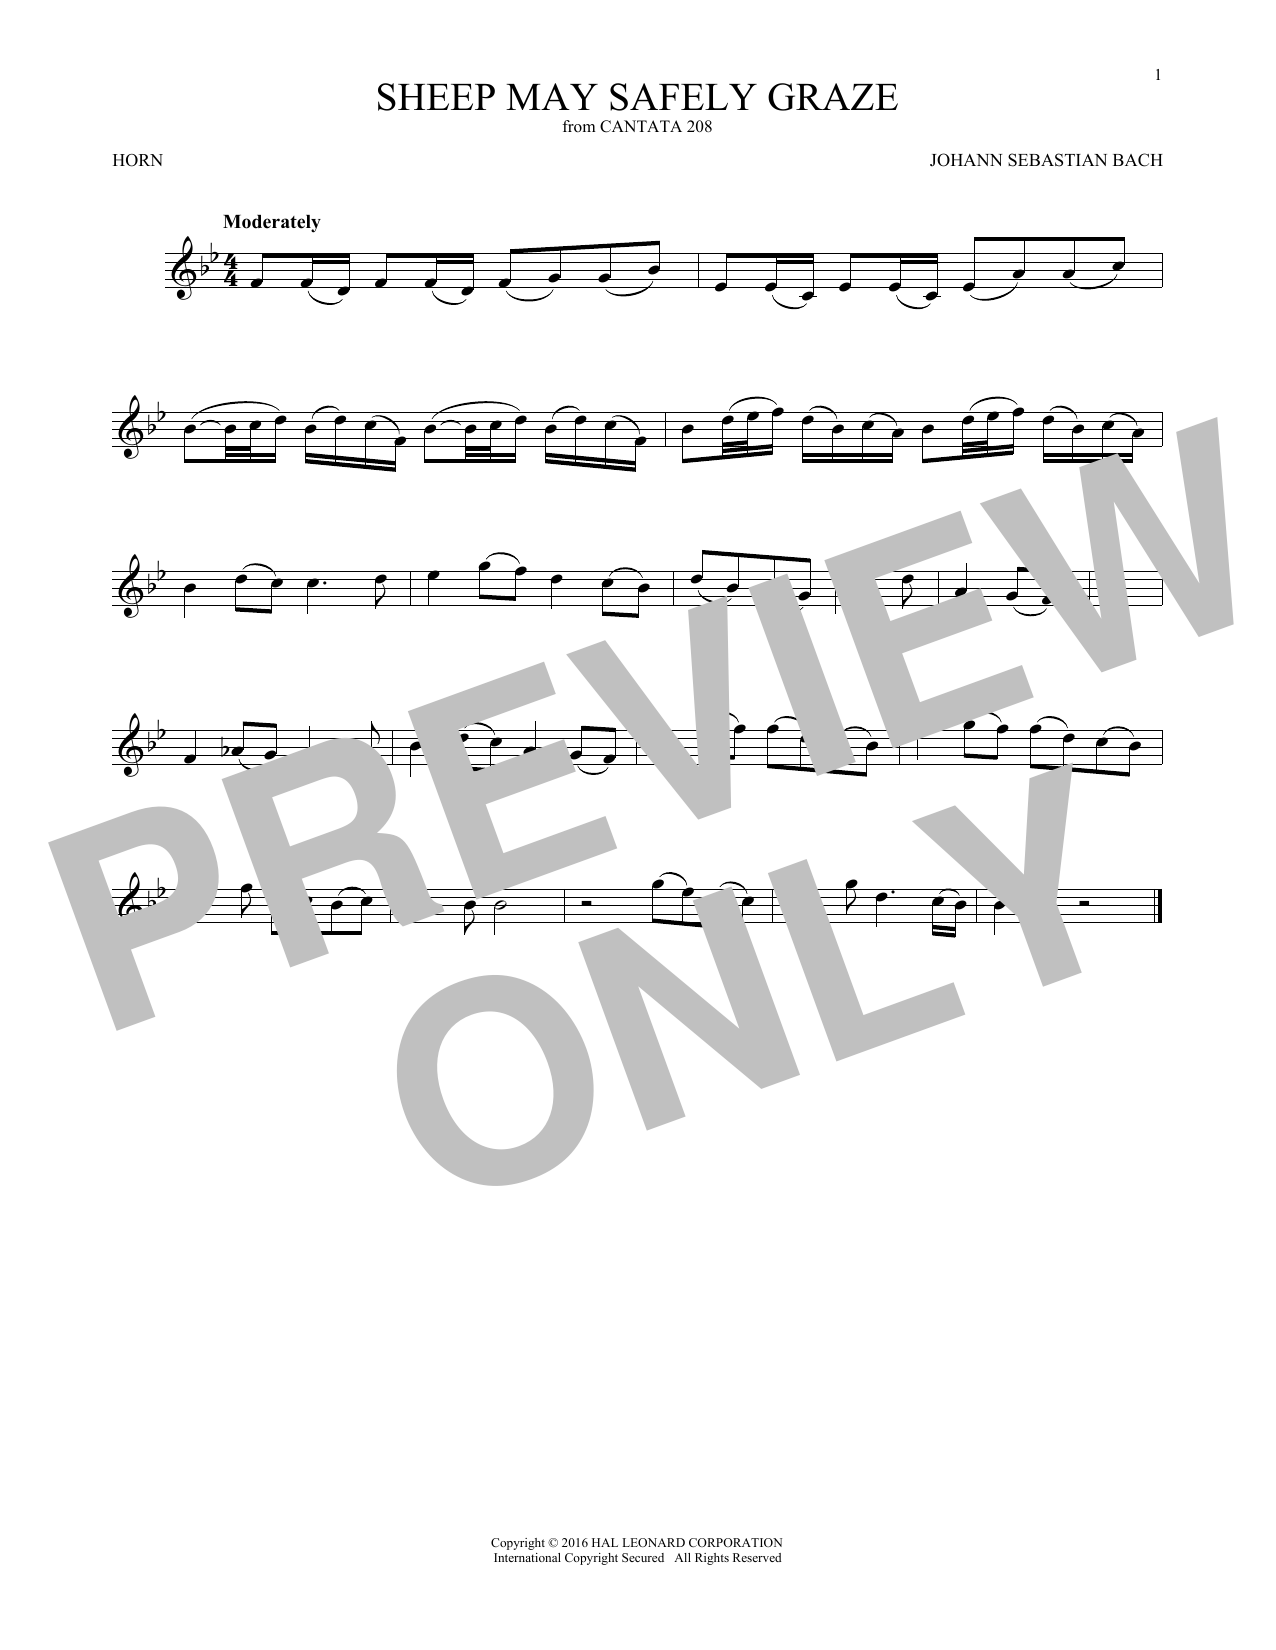 Sheep May Safely Graze (French Horn Solo)